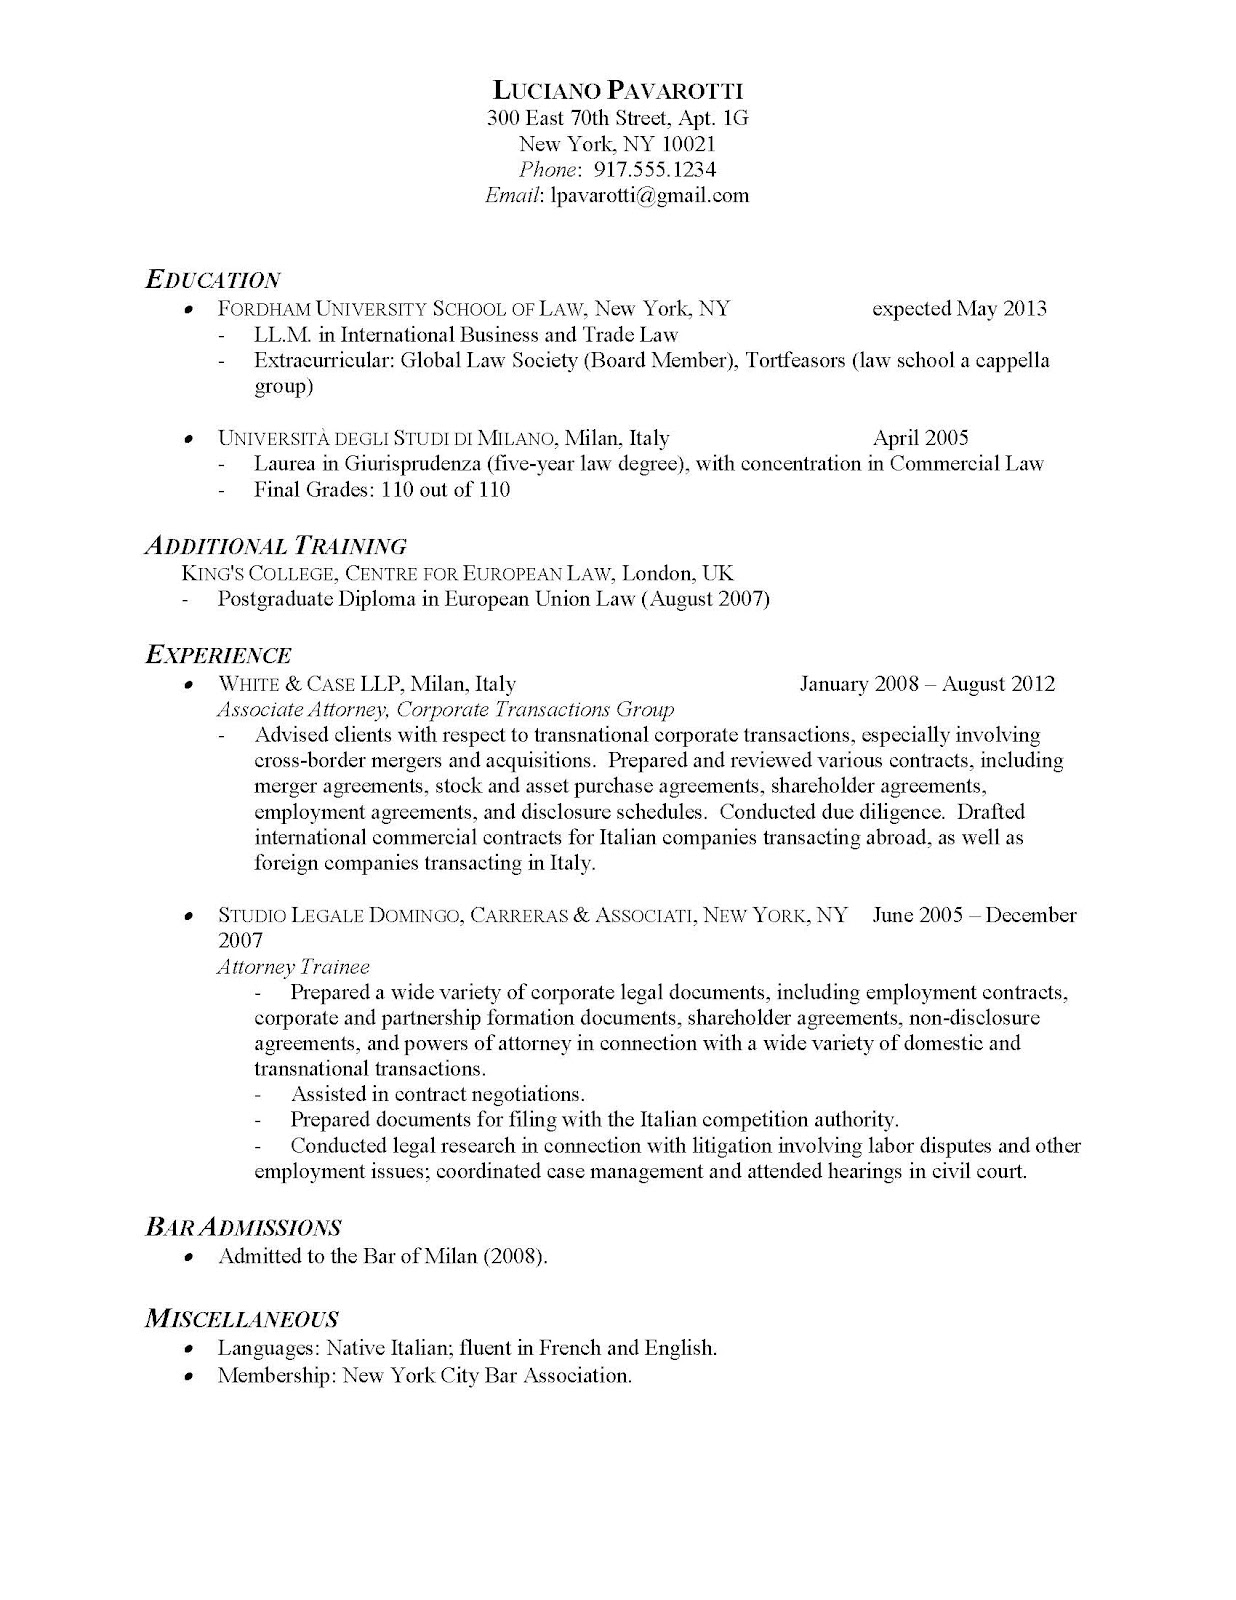 m career corner for resume formatting its best to keep it simple how should my resume be formatted